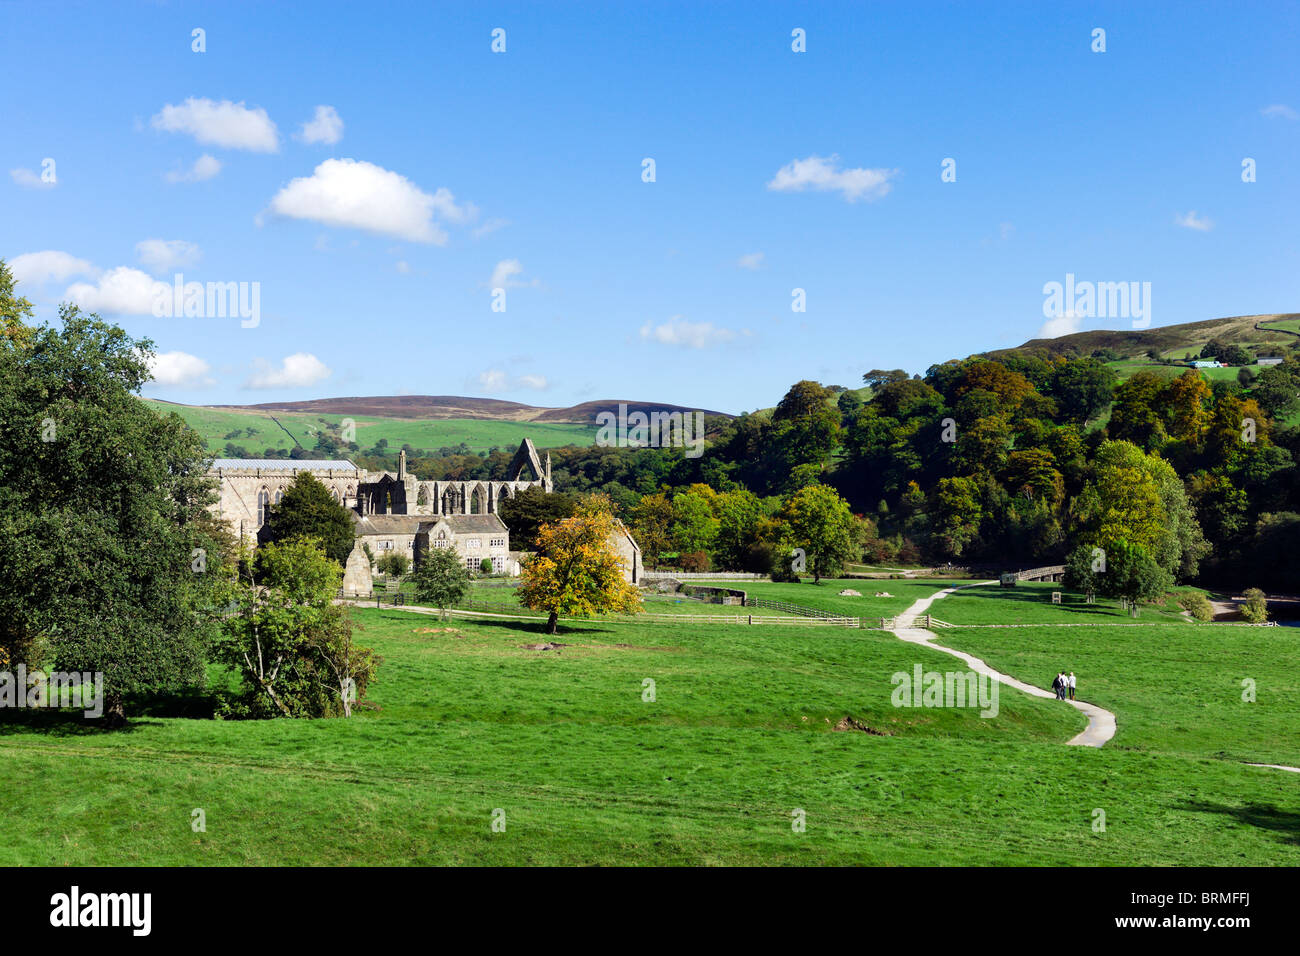 Bolton Priory and the Dales Way path, Bolton Abbey, Wharfedale, Yorkshire Dales, North Yorkshire, England, UK - Stock Image